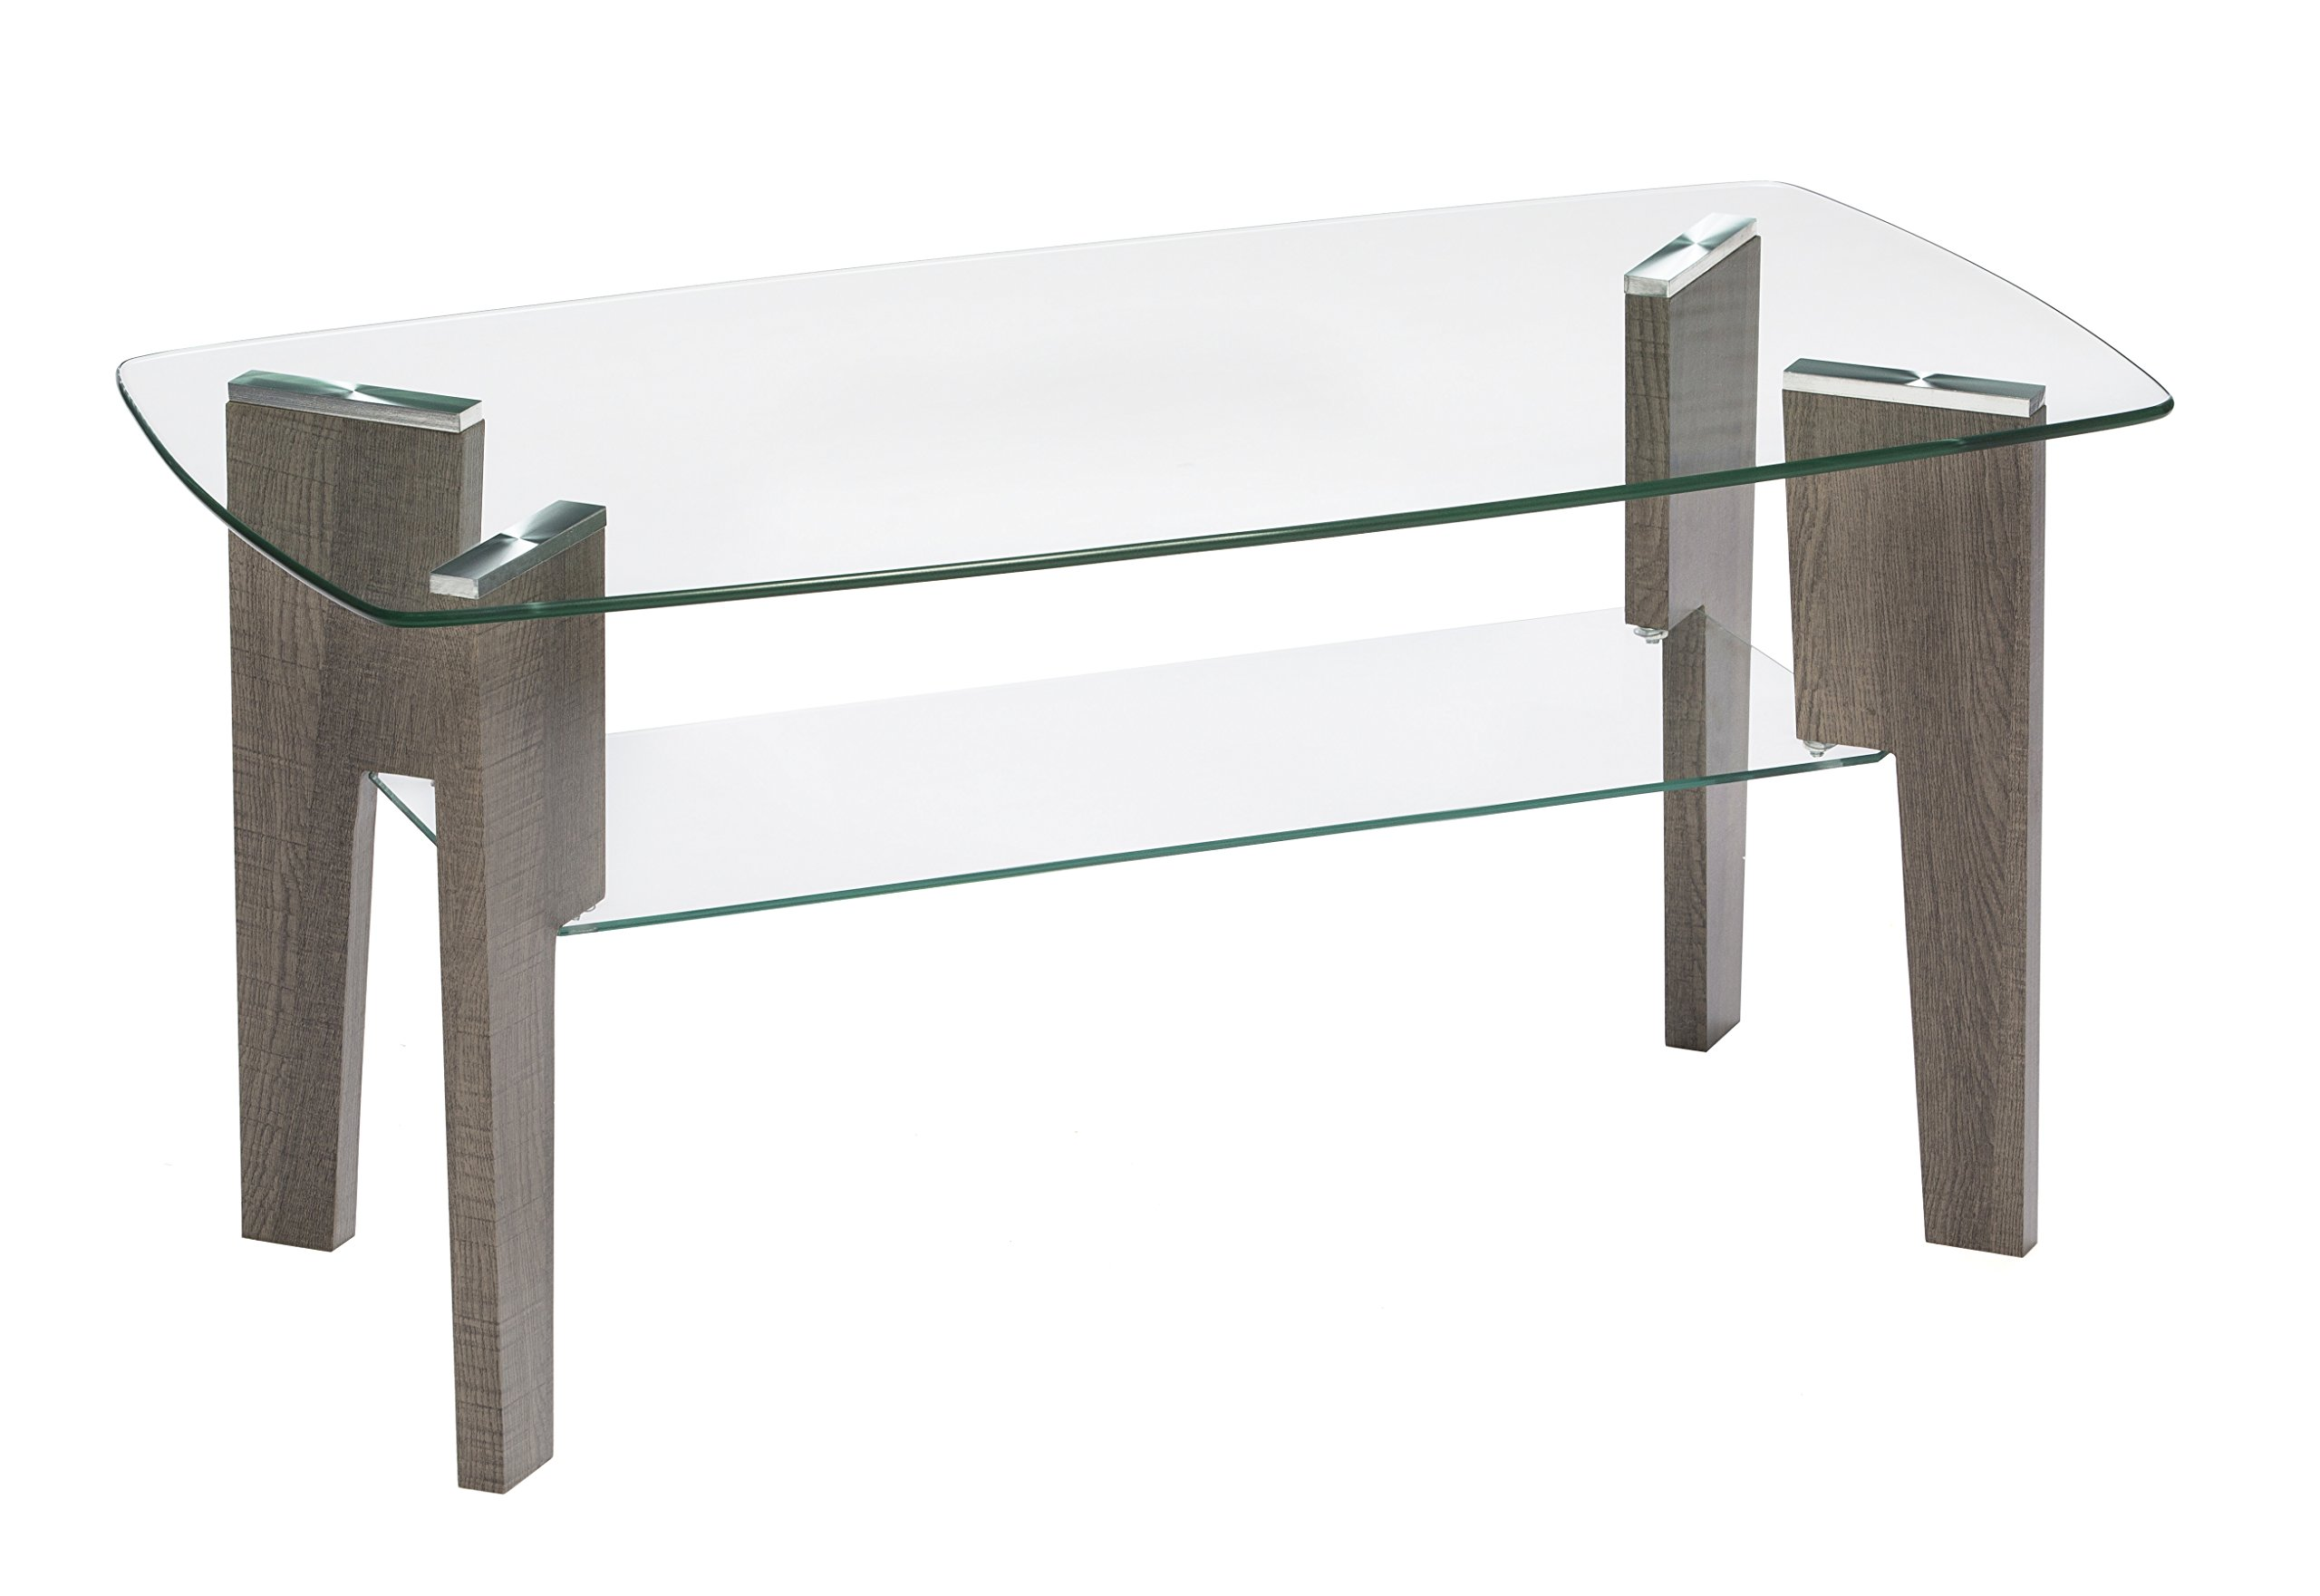 Mango Steam Mid Century Modern Glass Top Coffee Table, 37'' L x 20'' W by Mango Steam (Image #2)